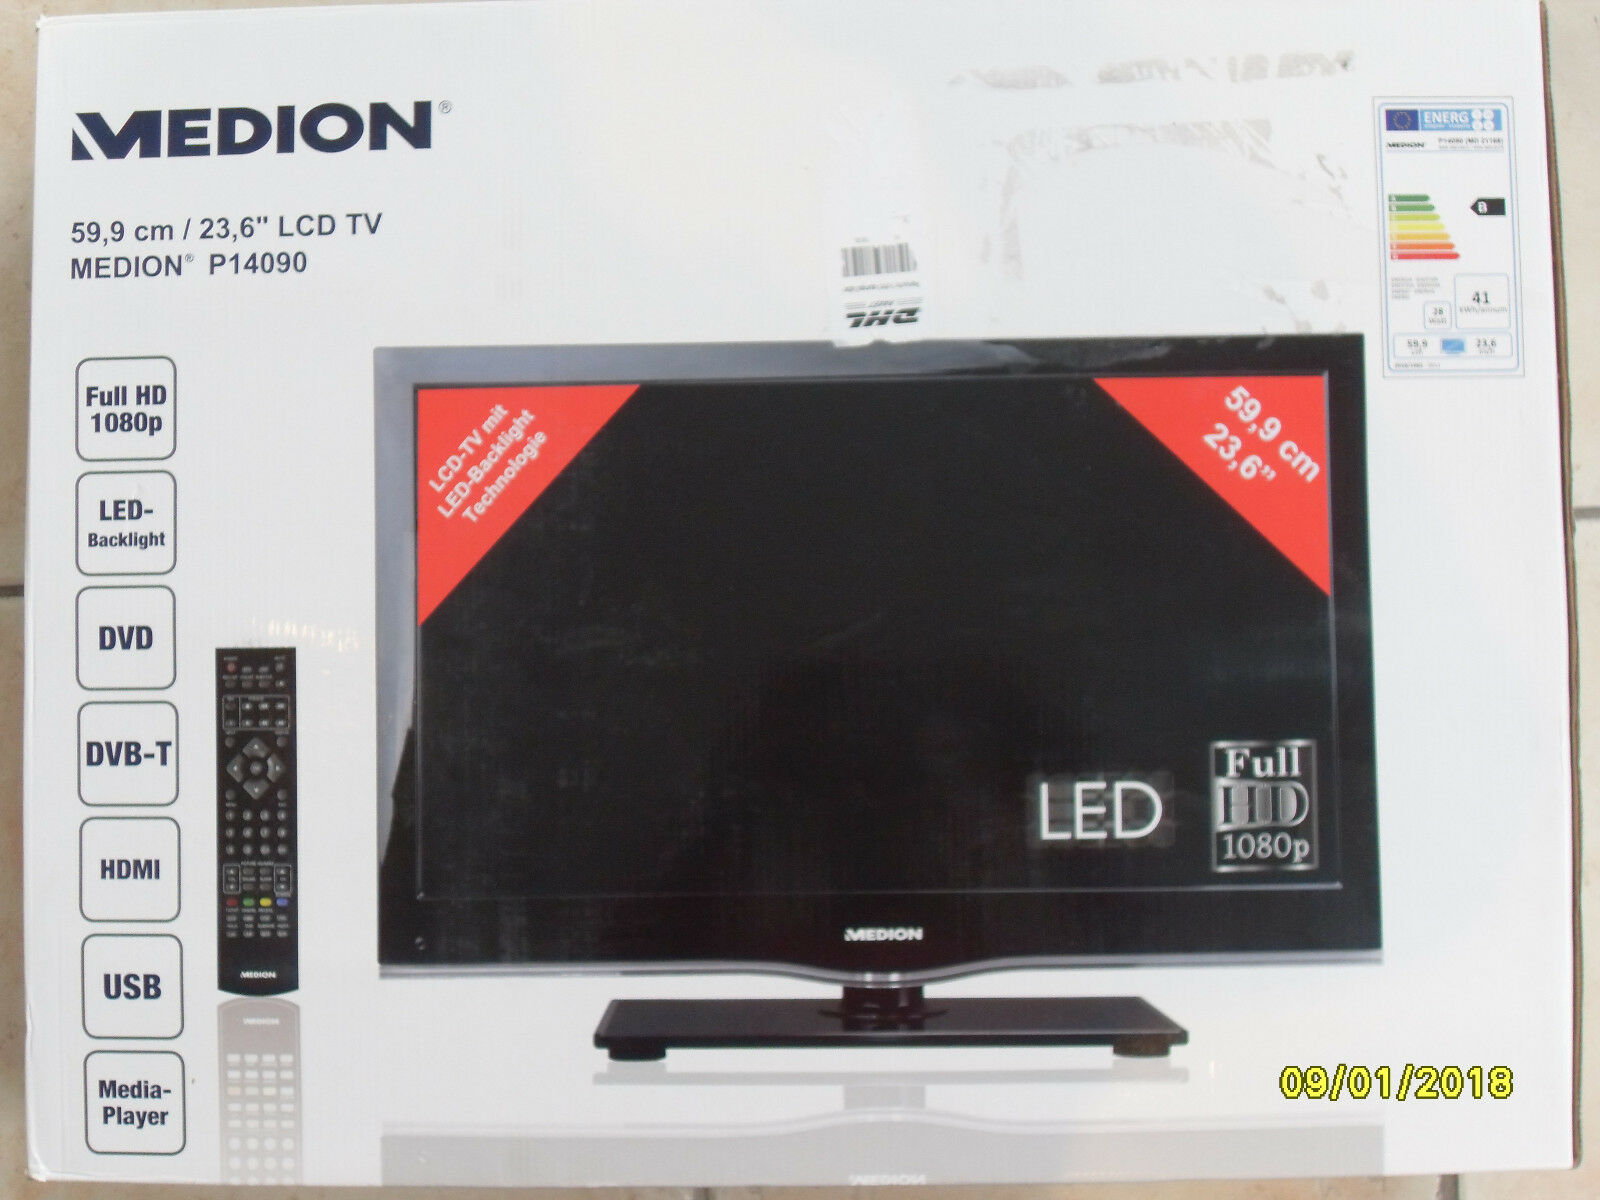 medion lcd fernseher p14090 1080p full hd led mit. Black Bedroom Furniture Sets. Home Design Ideas